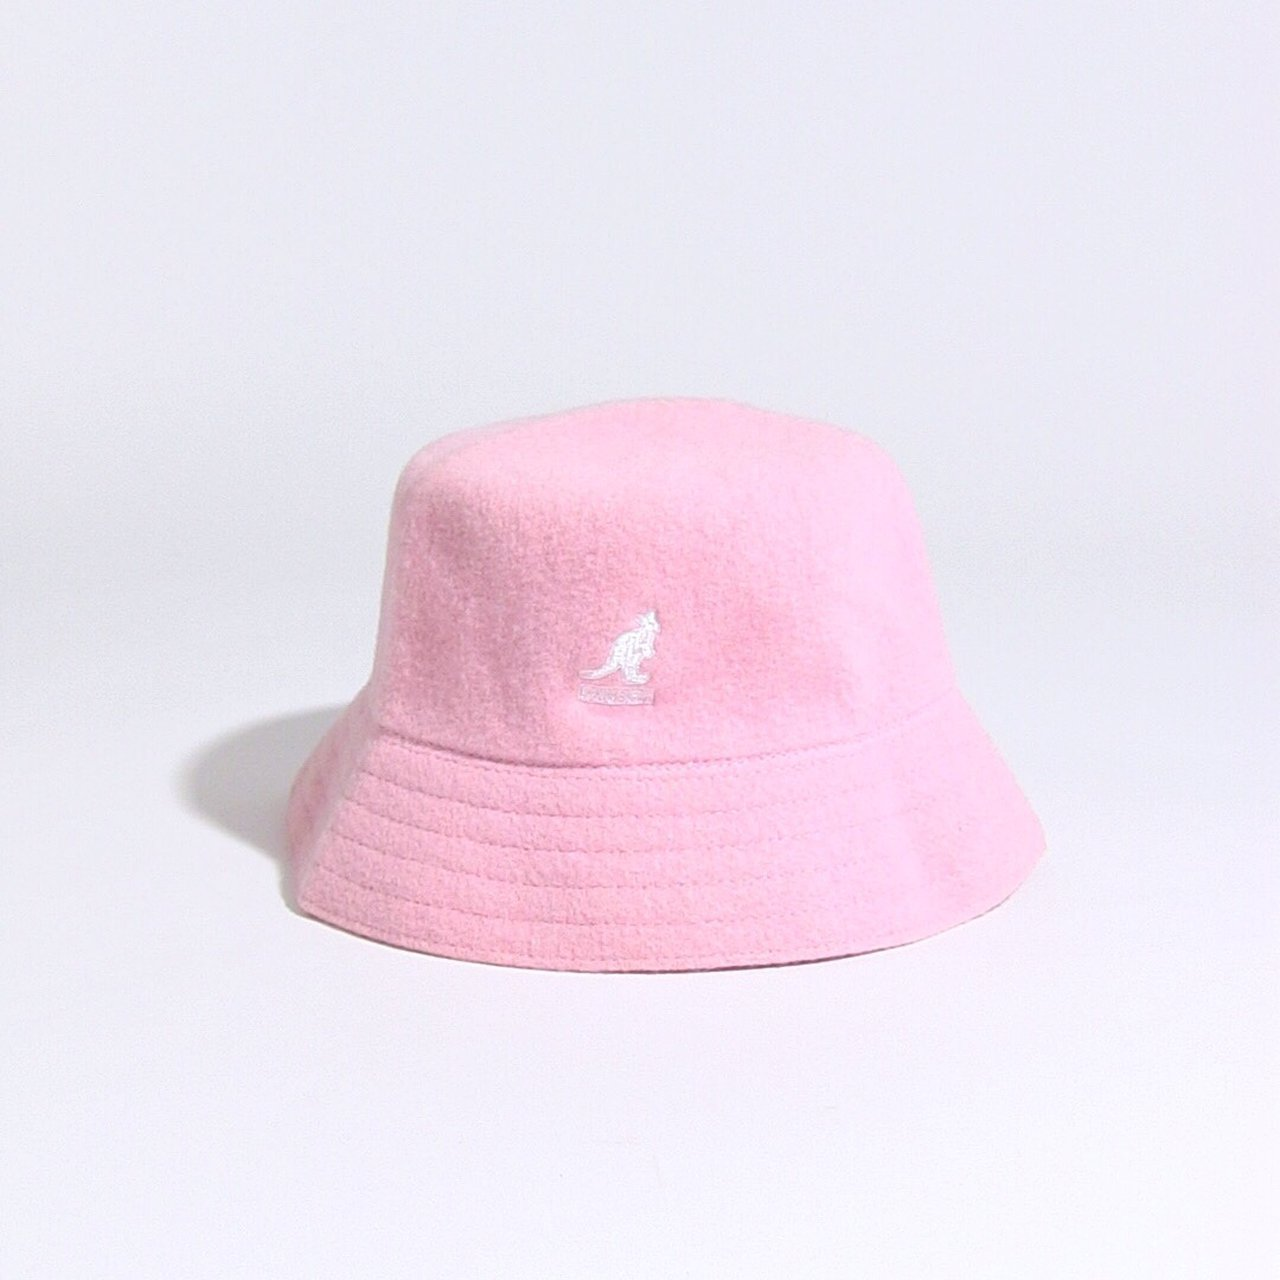 discount for  younotfatma ! ✨ Light pink y2k Kangol bucket - Depop 040e0c02d97